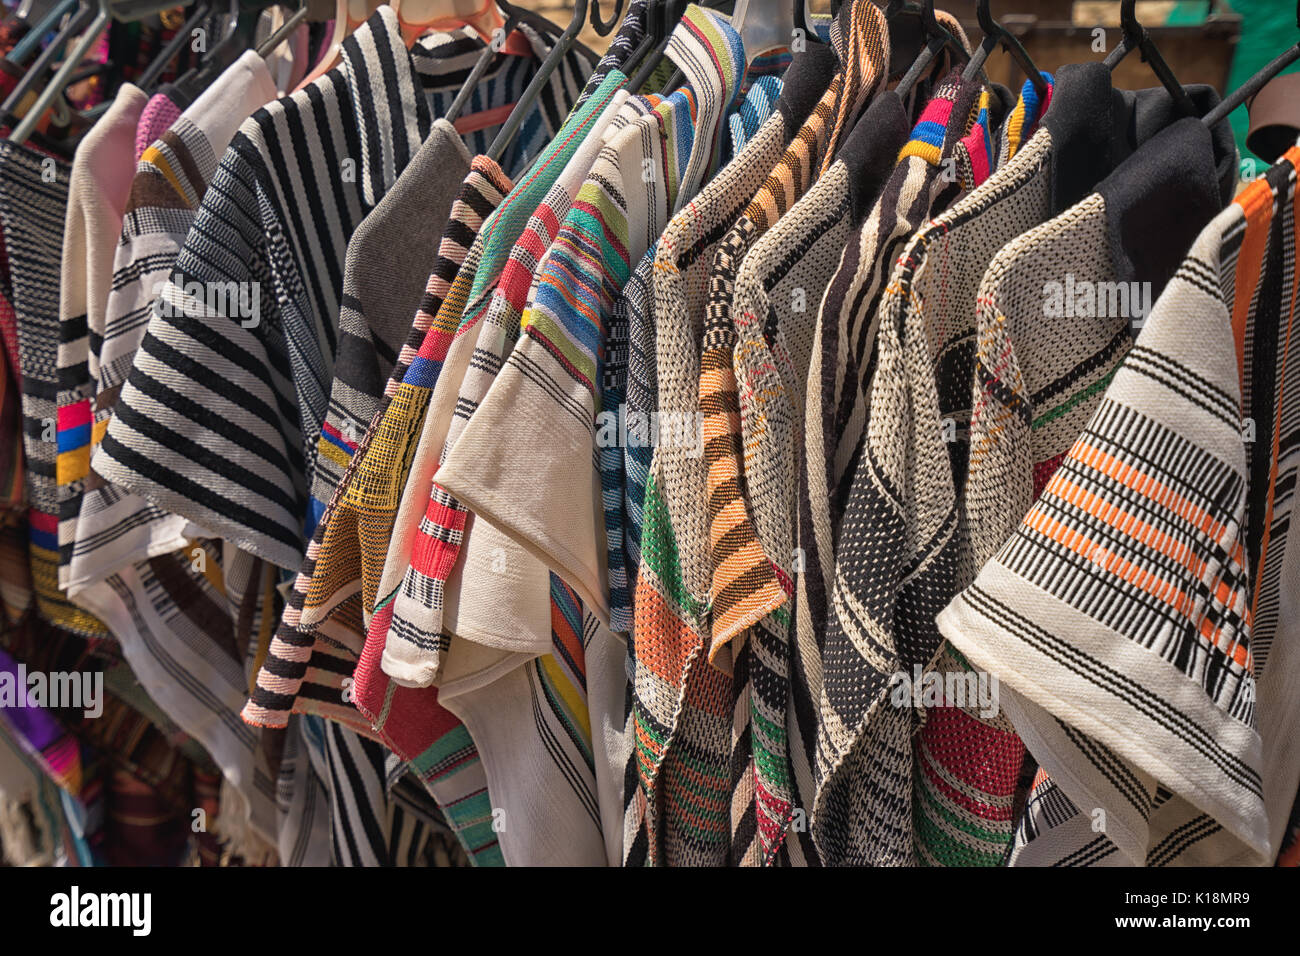 Colombian mens ponchos - Stock Image